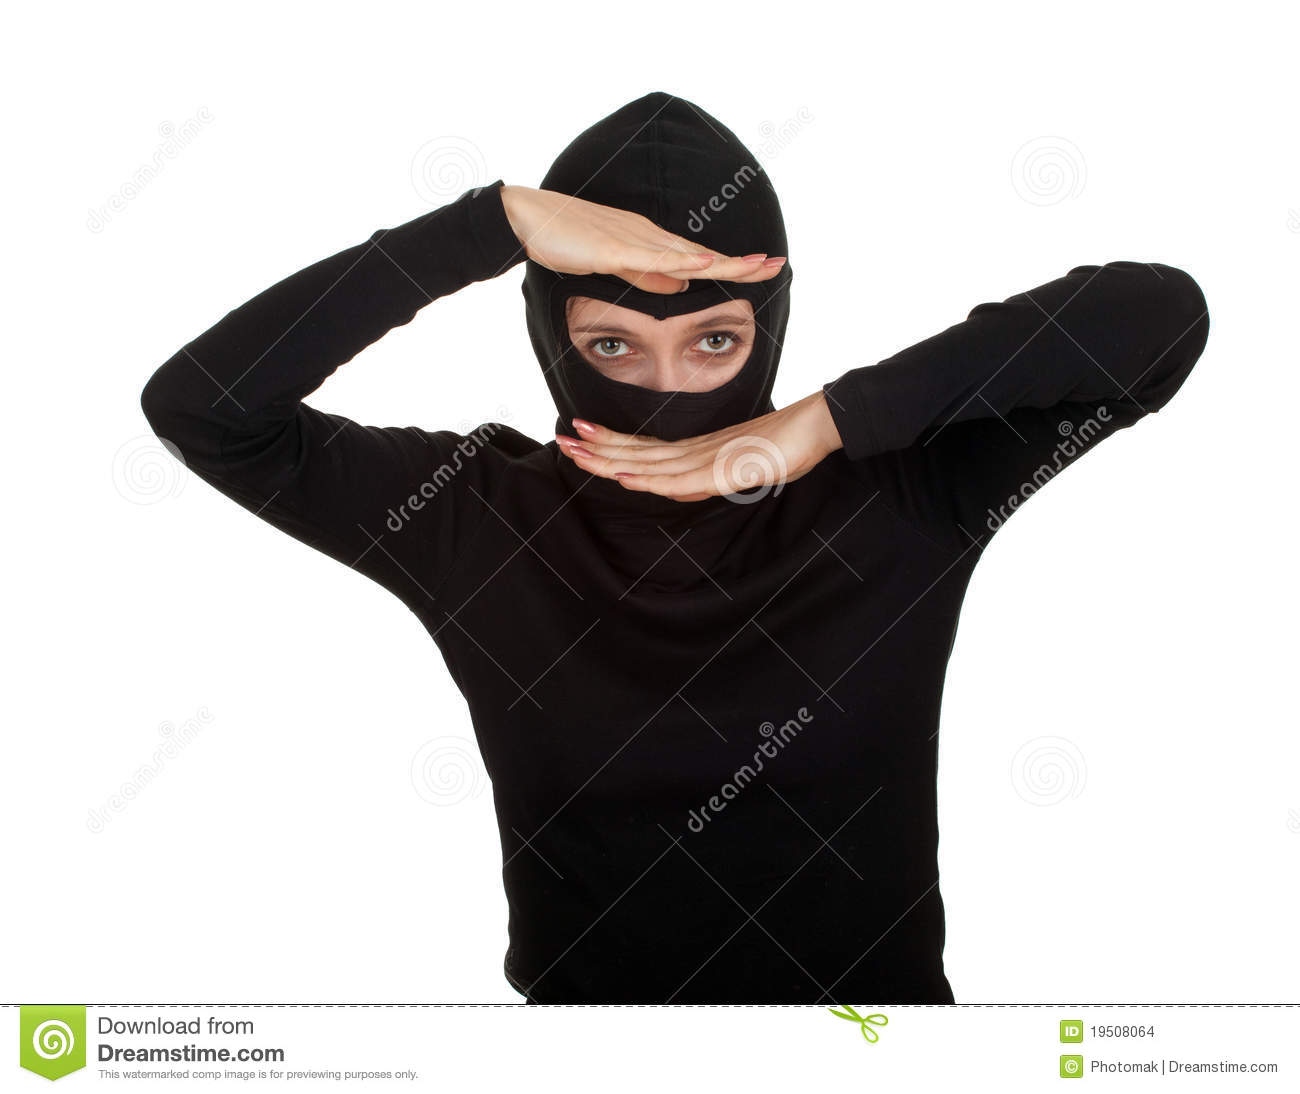 Female Thief In Black Balaclava Stock Images   Image  19508064